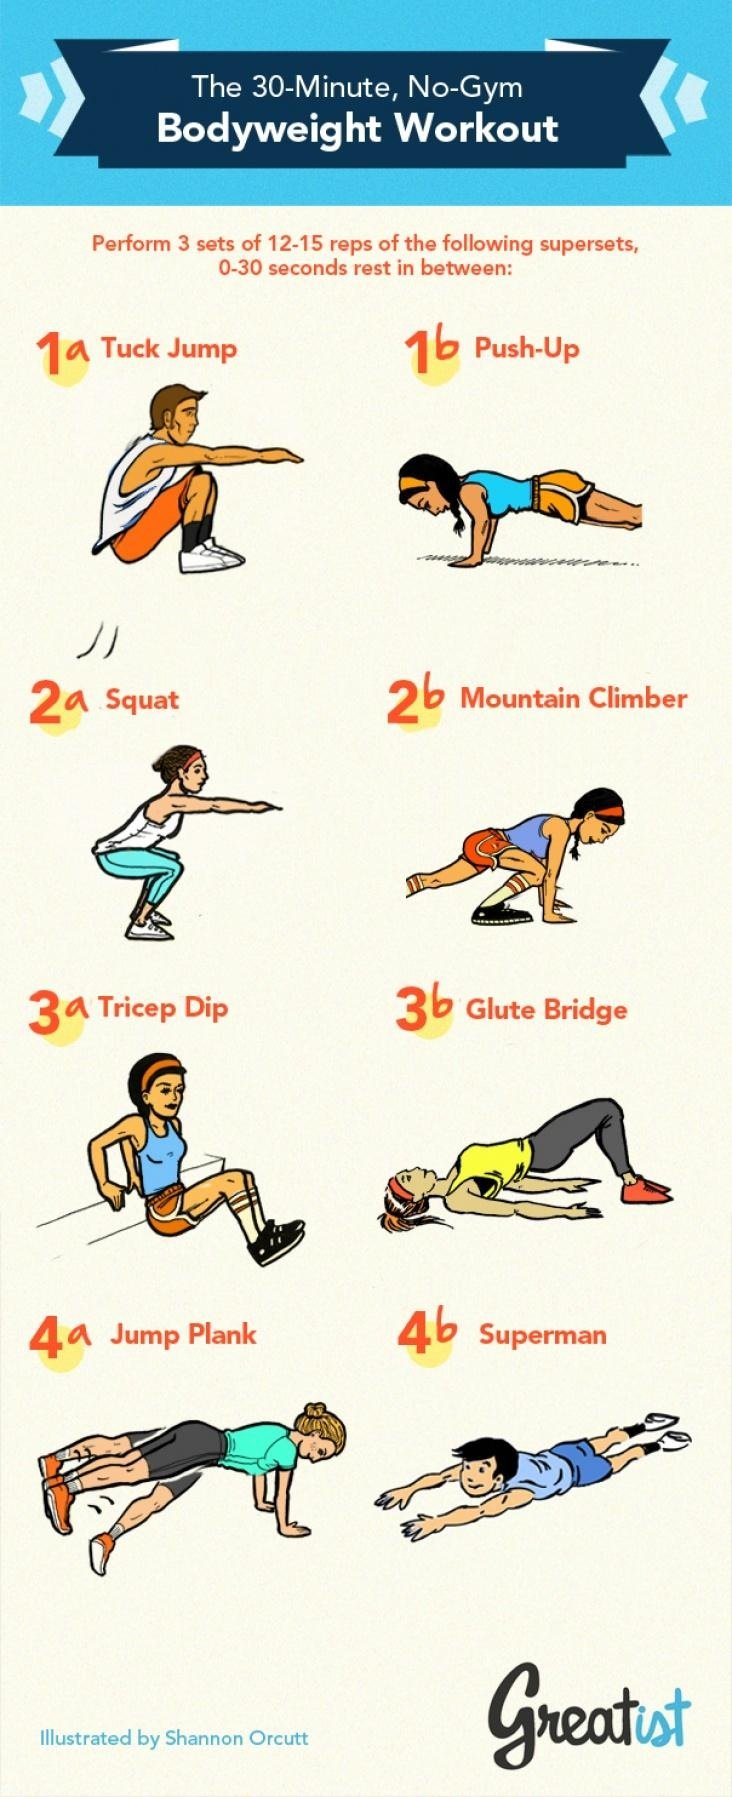 The 30-Minute, No-Gym Bodyweight Workout #infographic